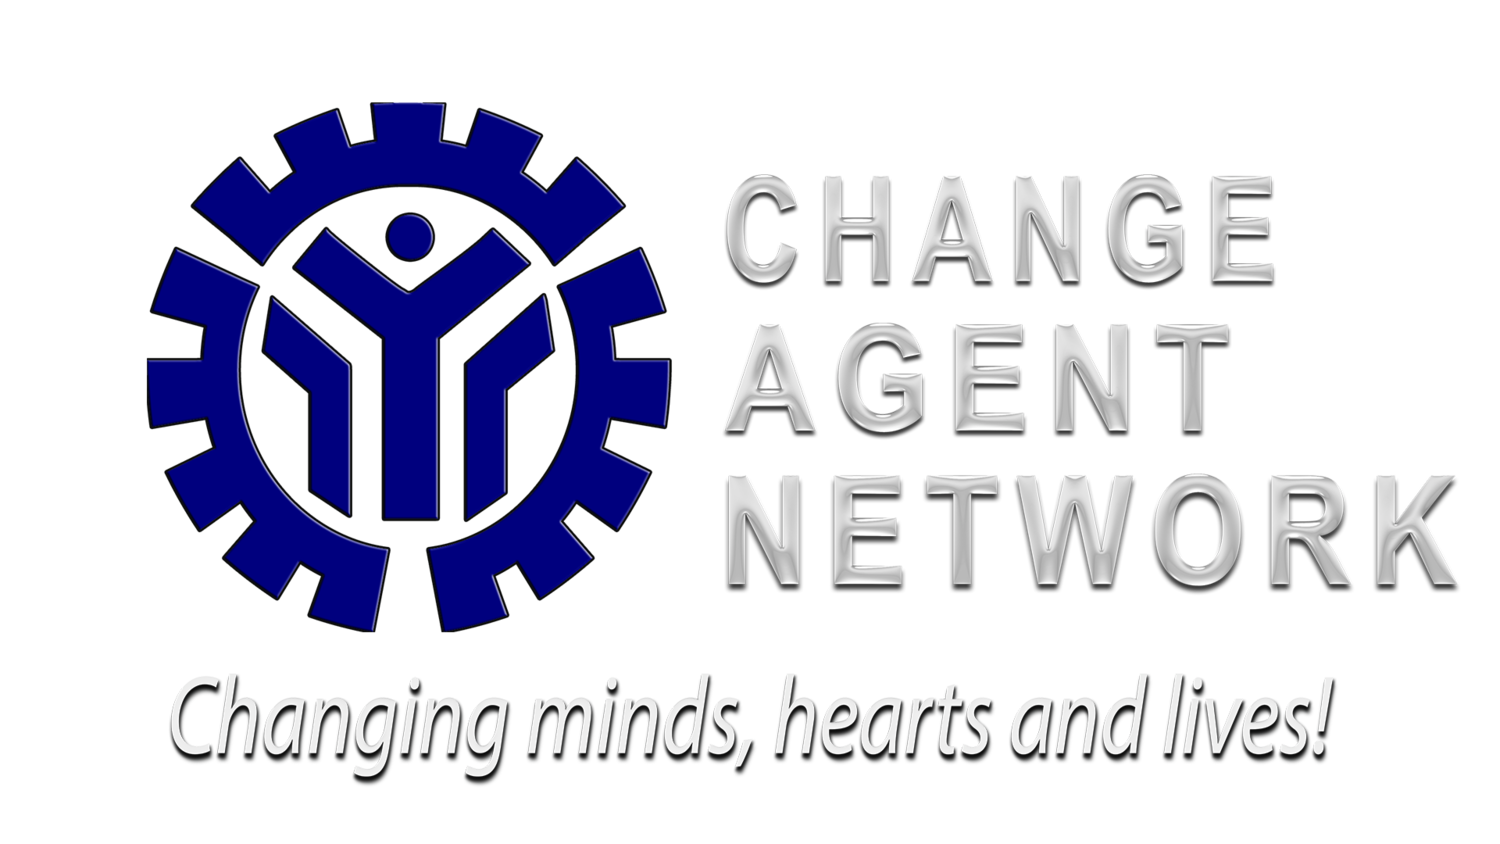 Change Agent Network, Inc.